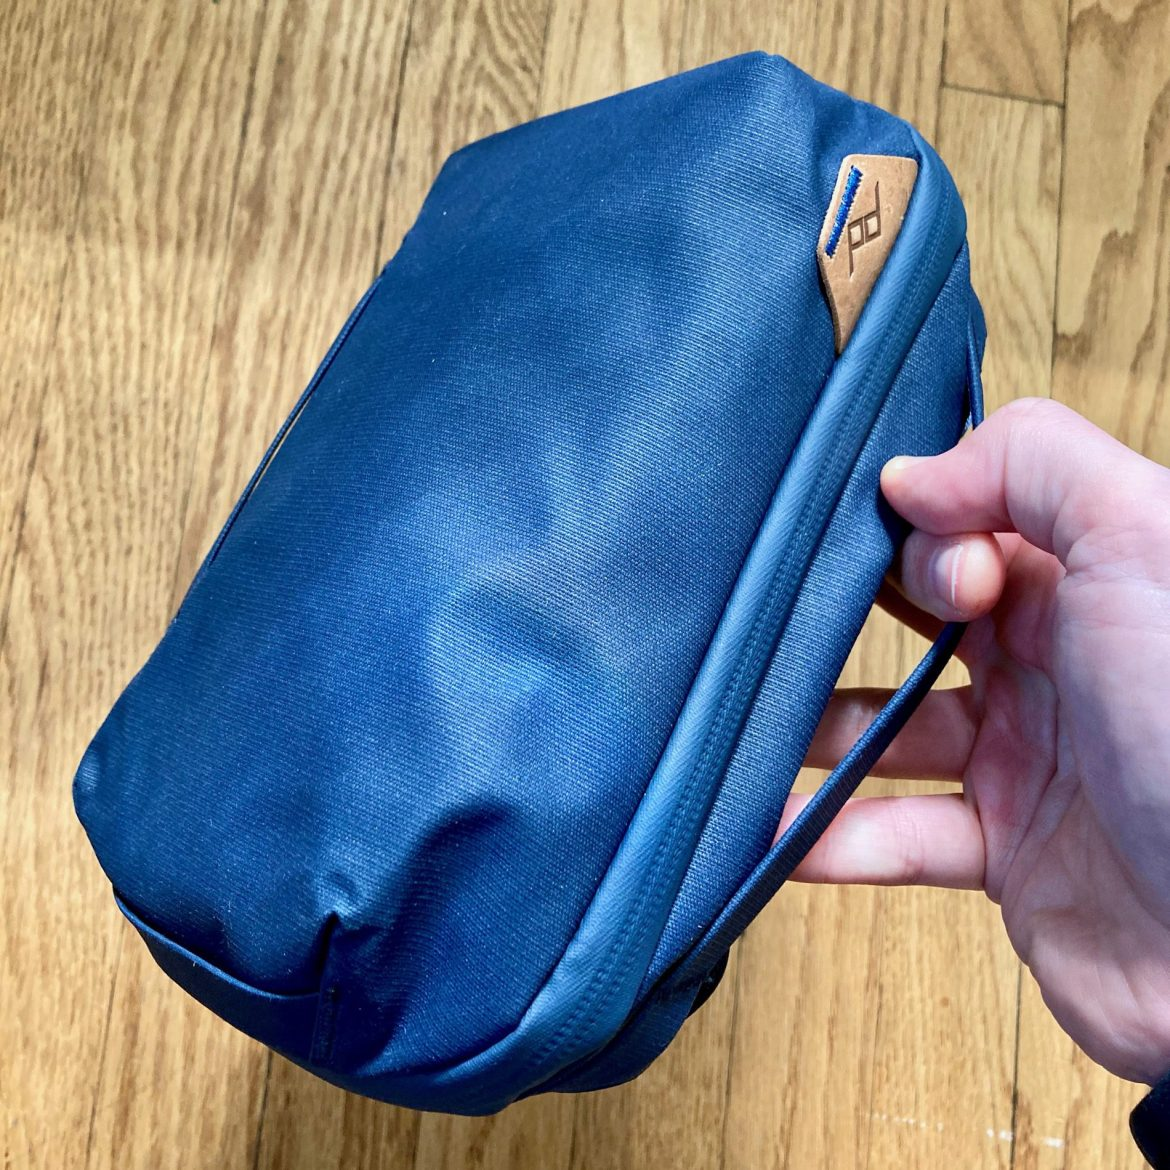 In Review: Peak Design Tech Pouch